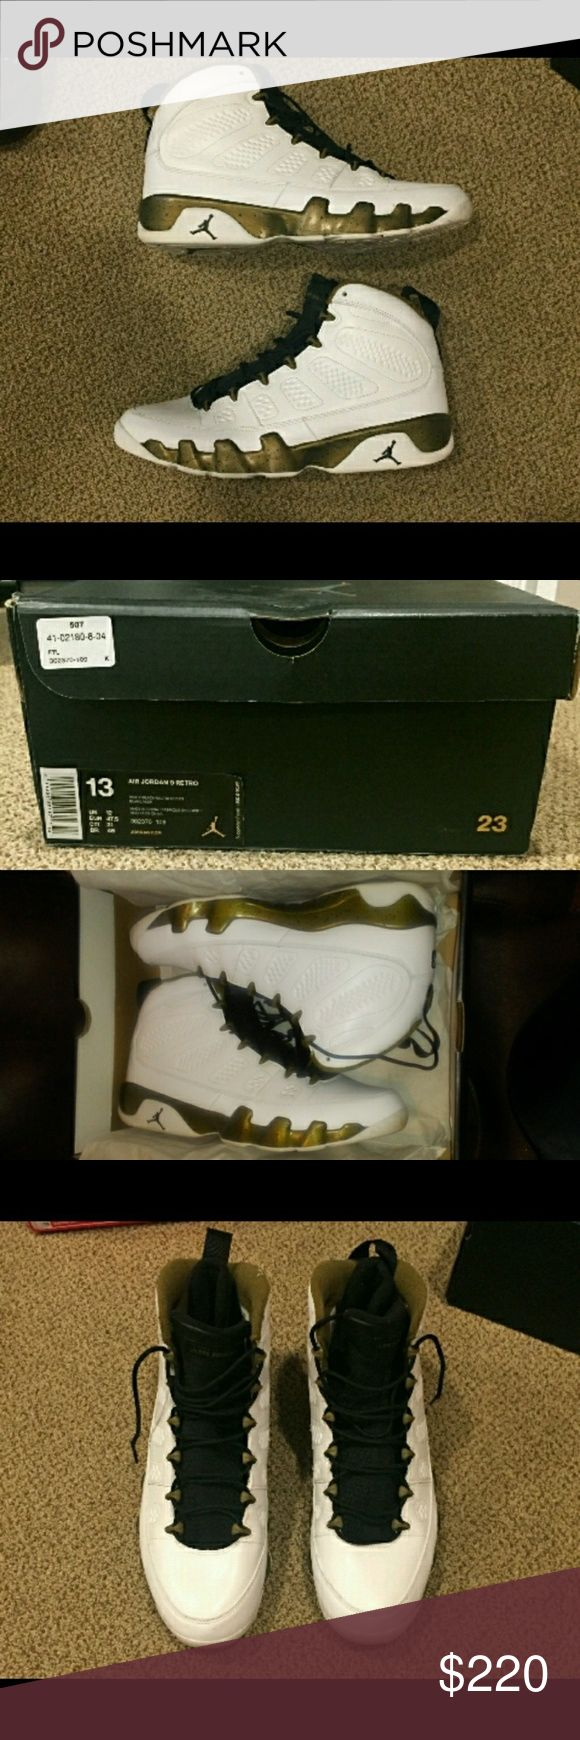 """AUTHENTIC Retro 9 JORDANS... SZ 13 Men AUTHENTIC Retro 9 JORDANS... SZ 13 Men..in Excellent condition worn once.Comes in original box...No trades or selling off POSHMARK. If you purchase this item you are agreeing to the release of payment Once POSHMARK has informed both you and I that the shipment has arrived. No low ballers. When submitting an offer keep in mind """" POSHMARK fees"""".. Air Jordan Shoes Athletic Shoes"""